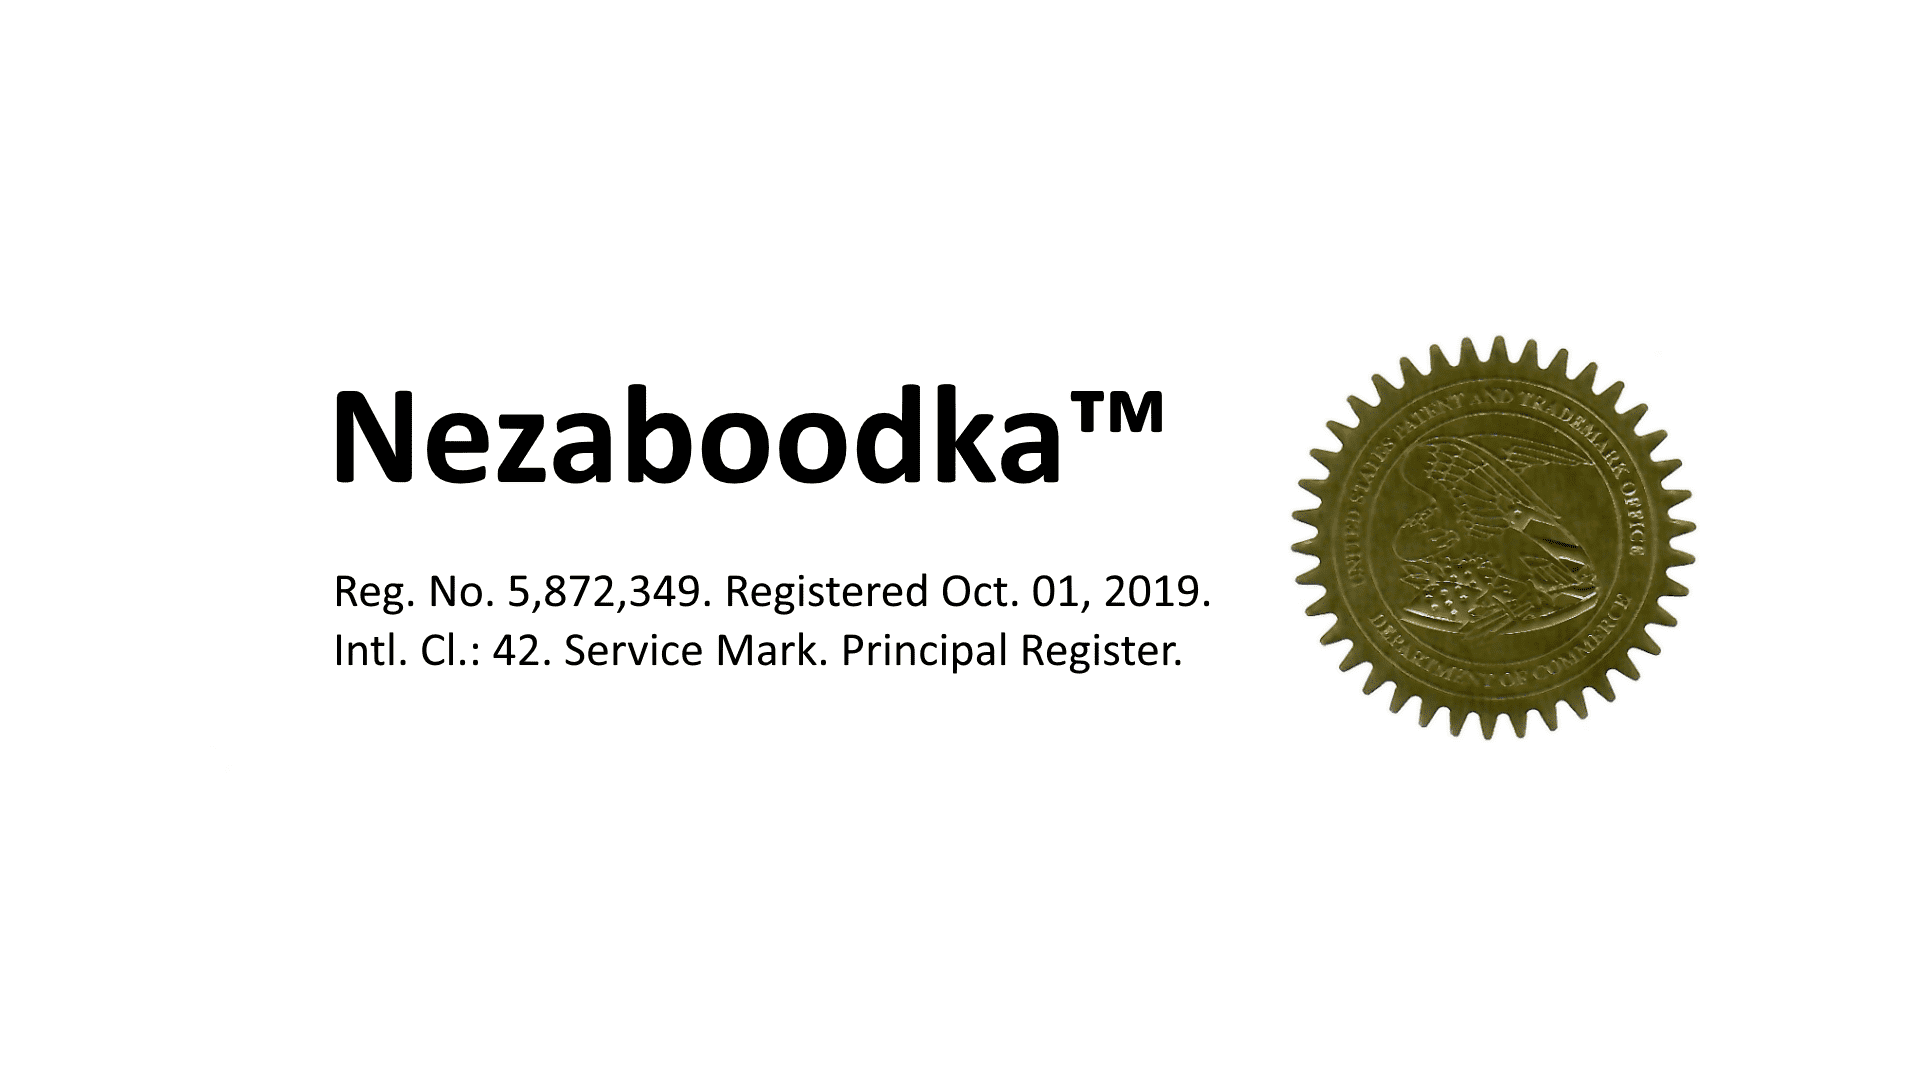 Nezaboodka™ is now an official trademark cover image